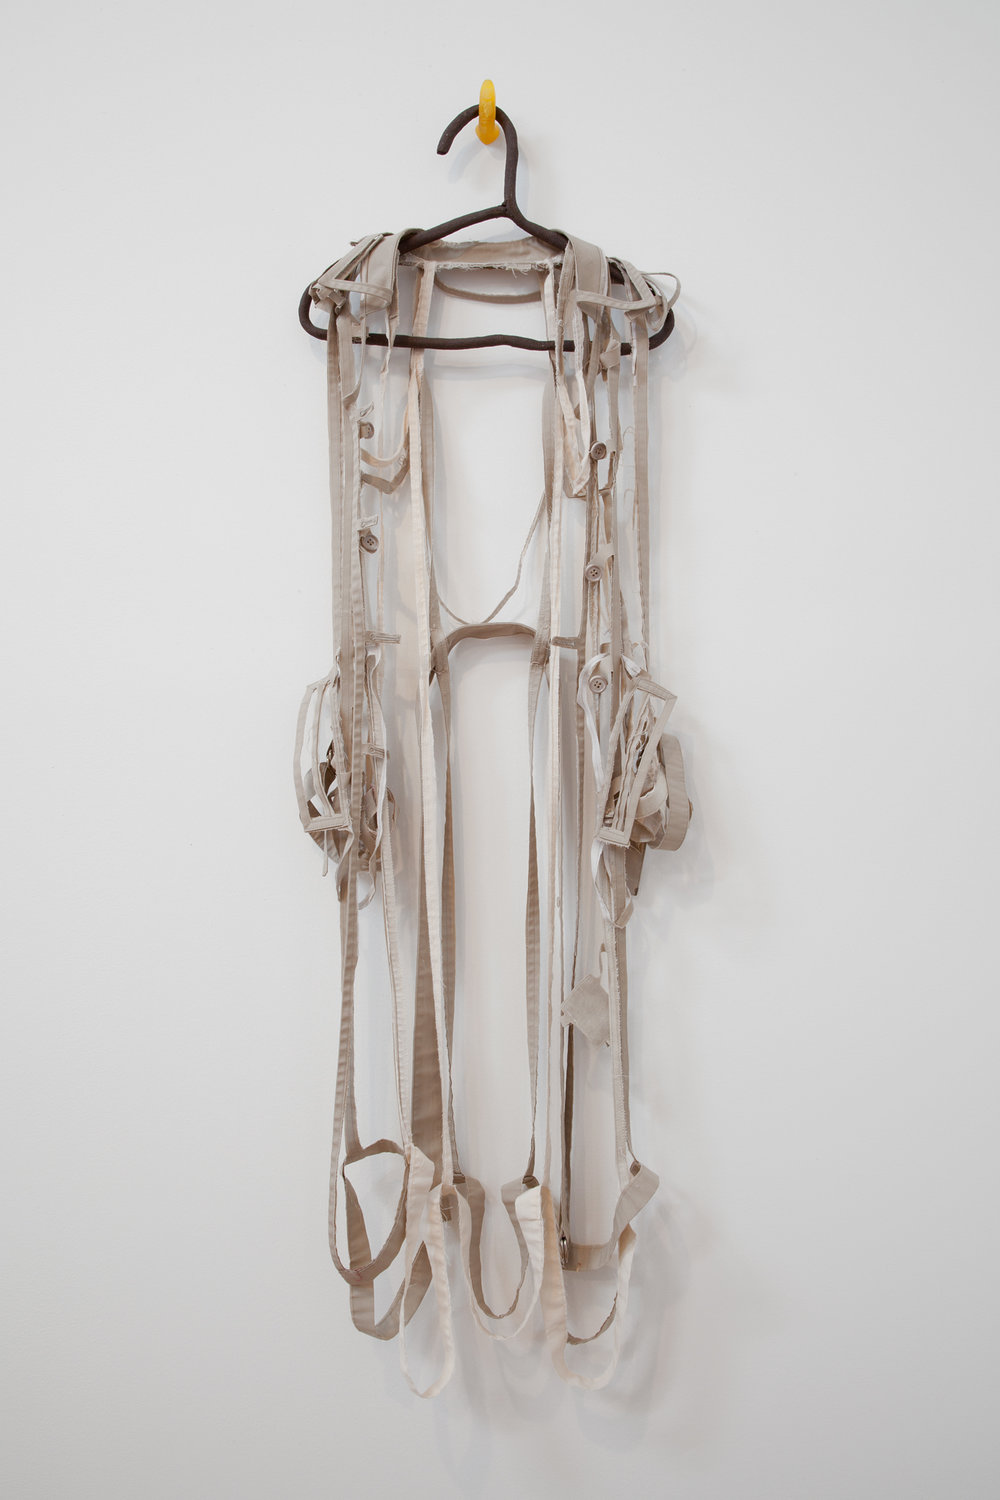 "ANNA SEW HOY   beige/cream , fired stoneware, trench coat and resin finger hook, 55"" x 17"" x 3.5"", 2012"